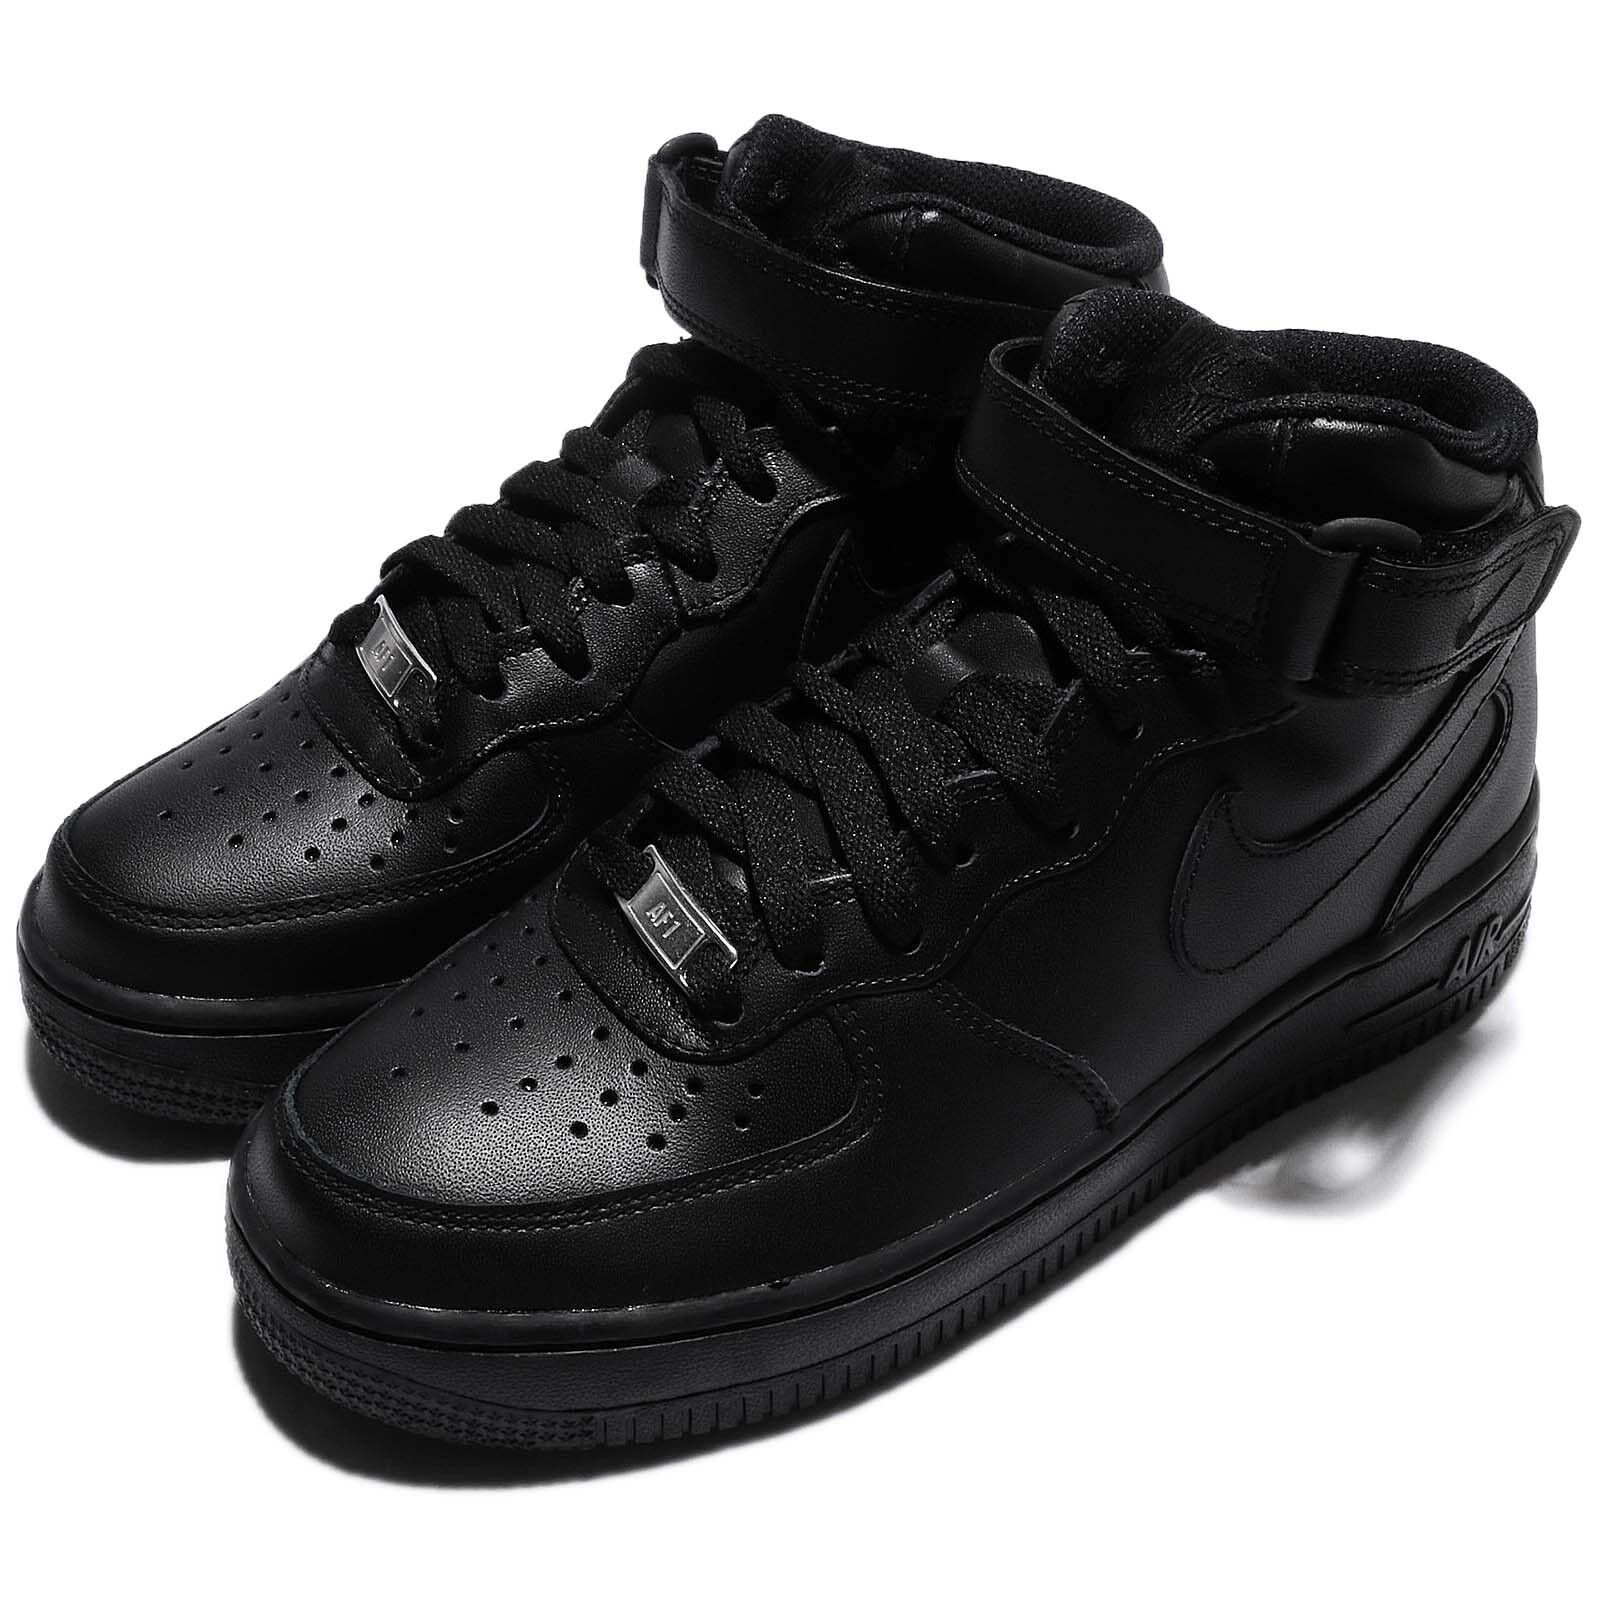 Wmns Nike Air Obliger 1 Mid 07 LE noir Out Femme chaussures Sneakers AF1 366731-001